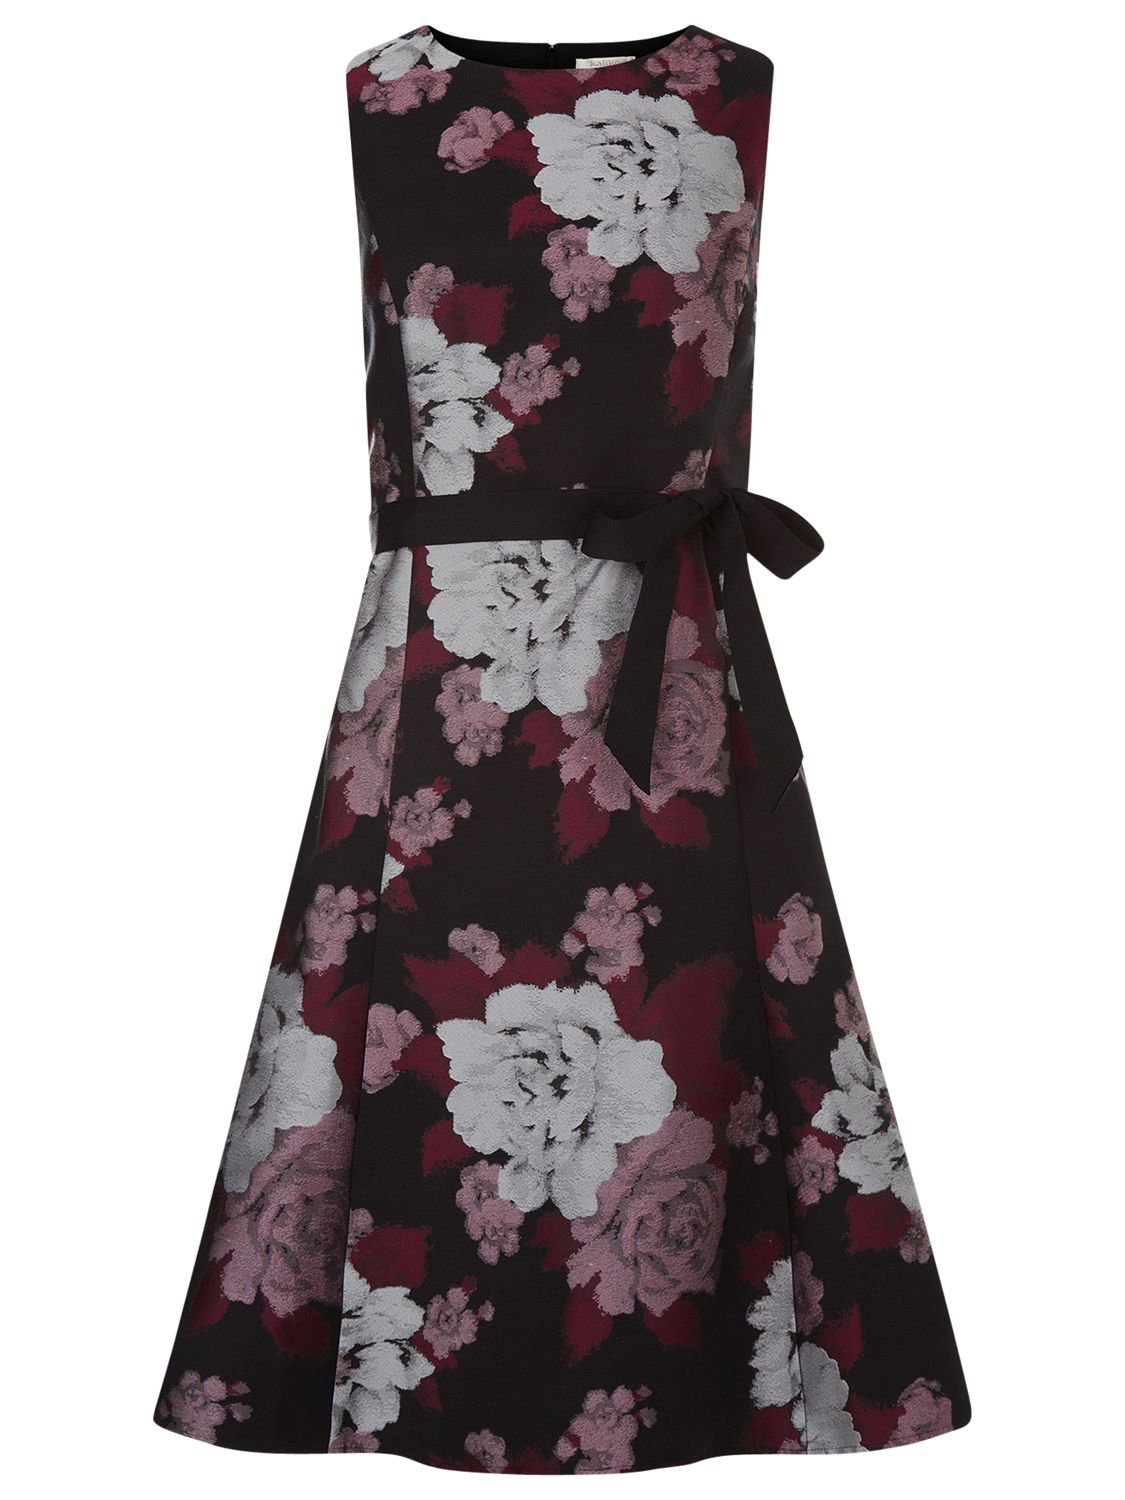 kaliko floral prom dress multi, kaliko, floral, prom, dress, multi, 8 12 10, clearance, womenswear offers, womens dresses offers, special offers, 20% off selected kaliko, women, inactive womenswear, new reductions, womens dresses, 1797475